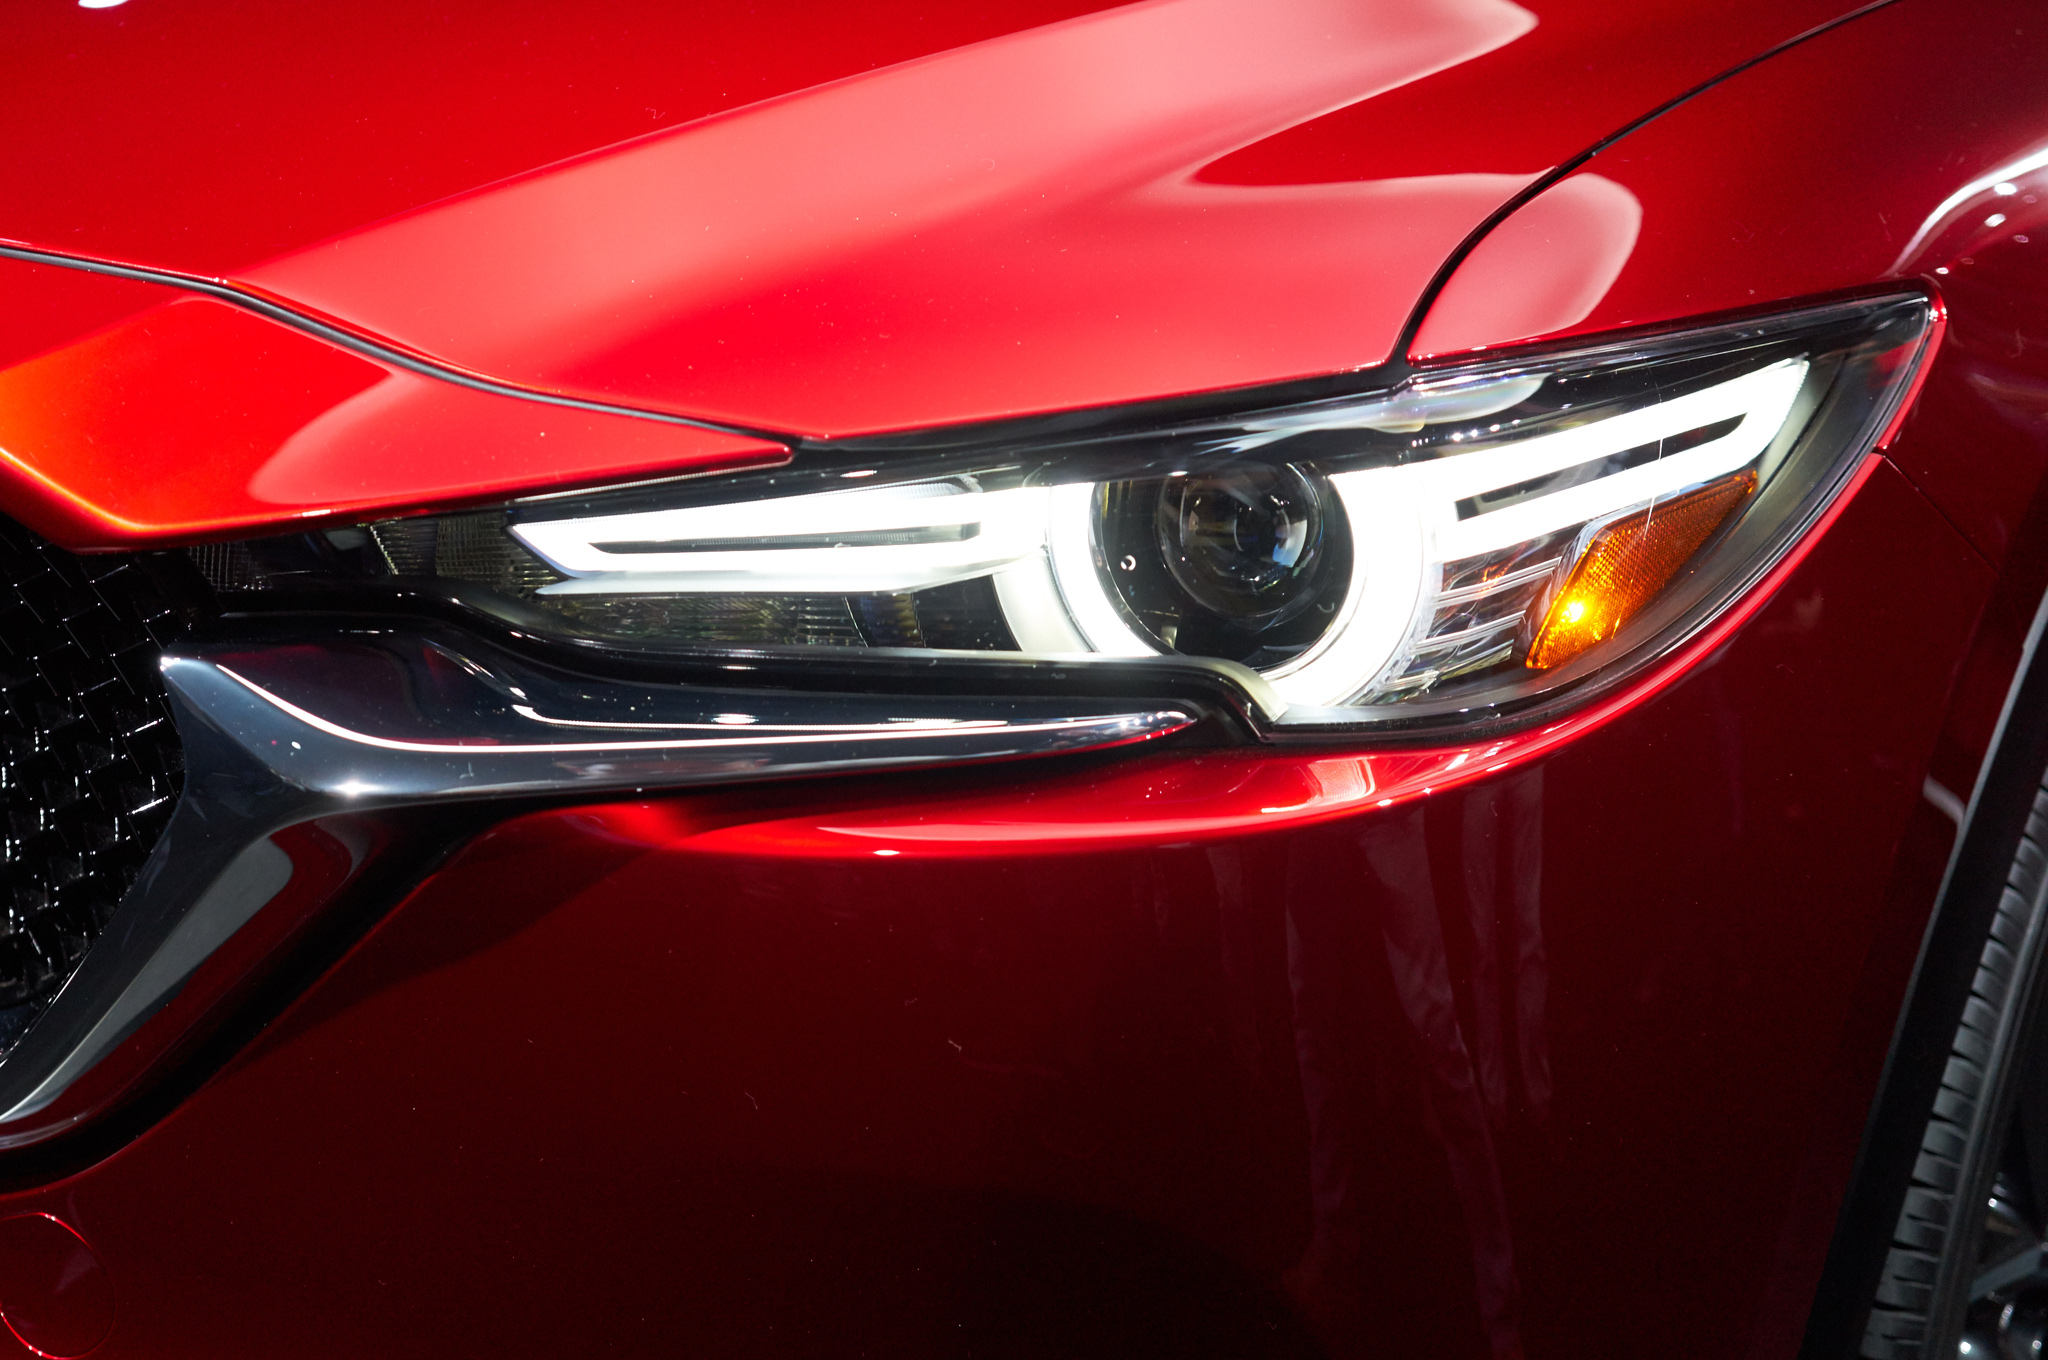 2017-mazda-cx-5-headlight